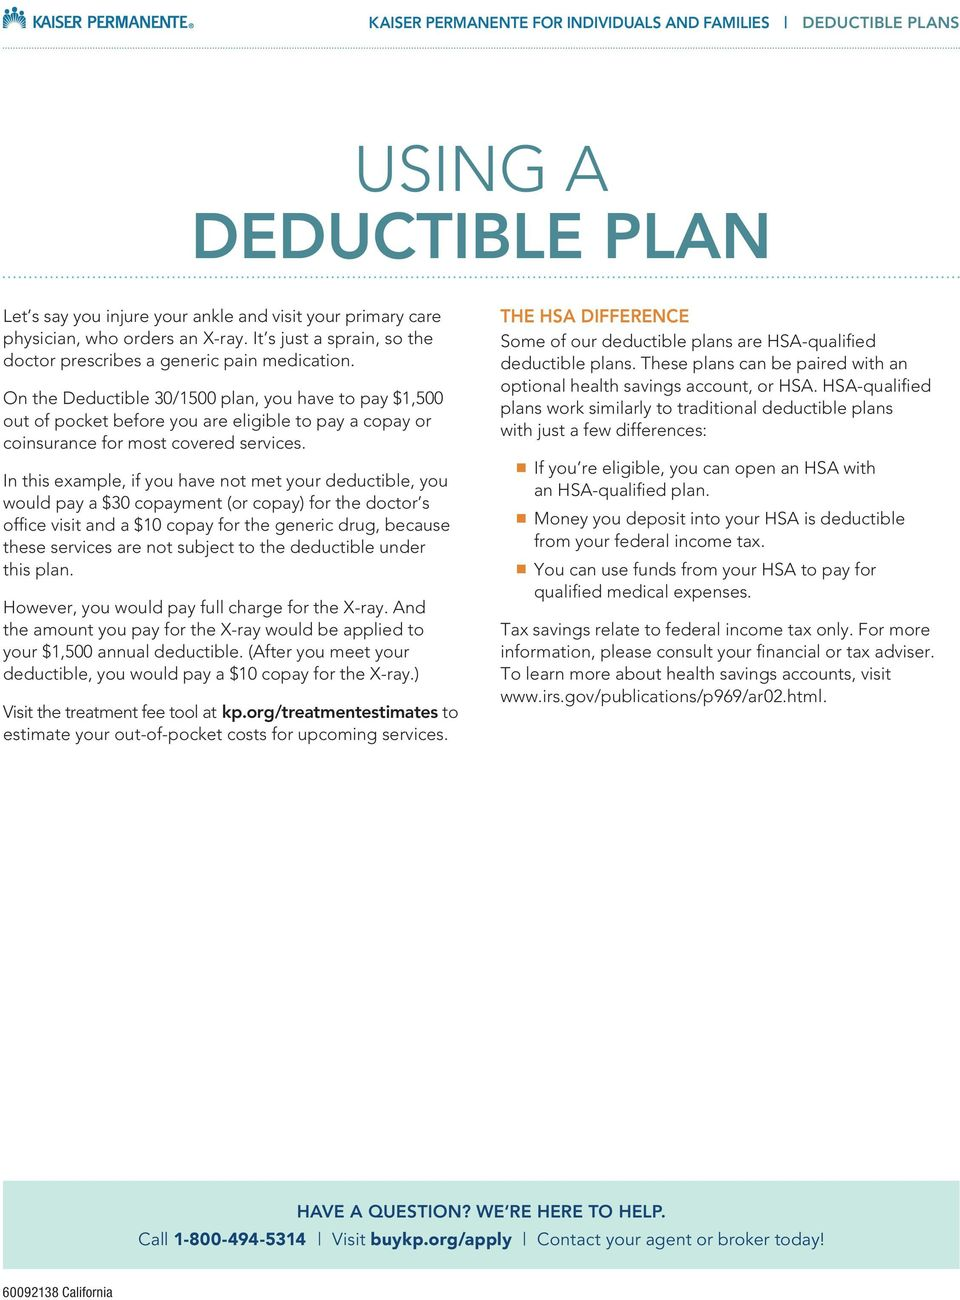 On the Deductible 30/1500 plan, you have to pay $1,500 out of pocket before you are eligible to pay a copay or coinsurance for most covered services.